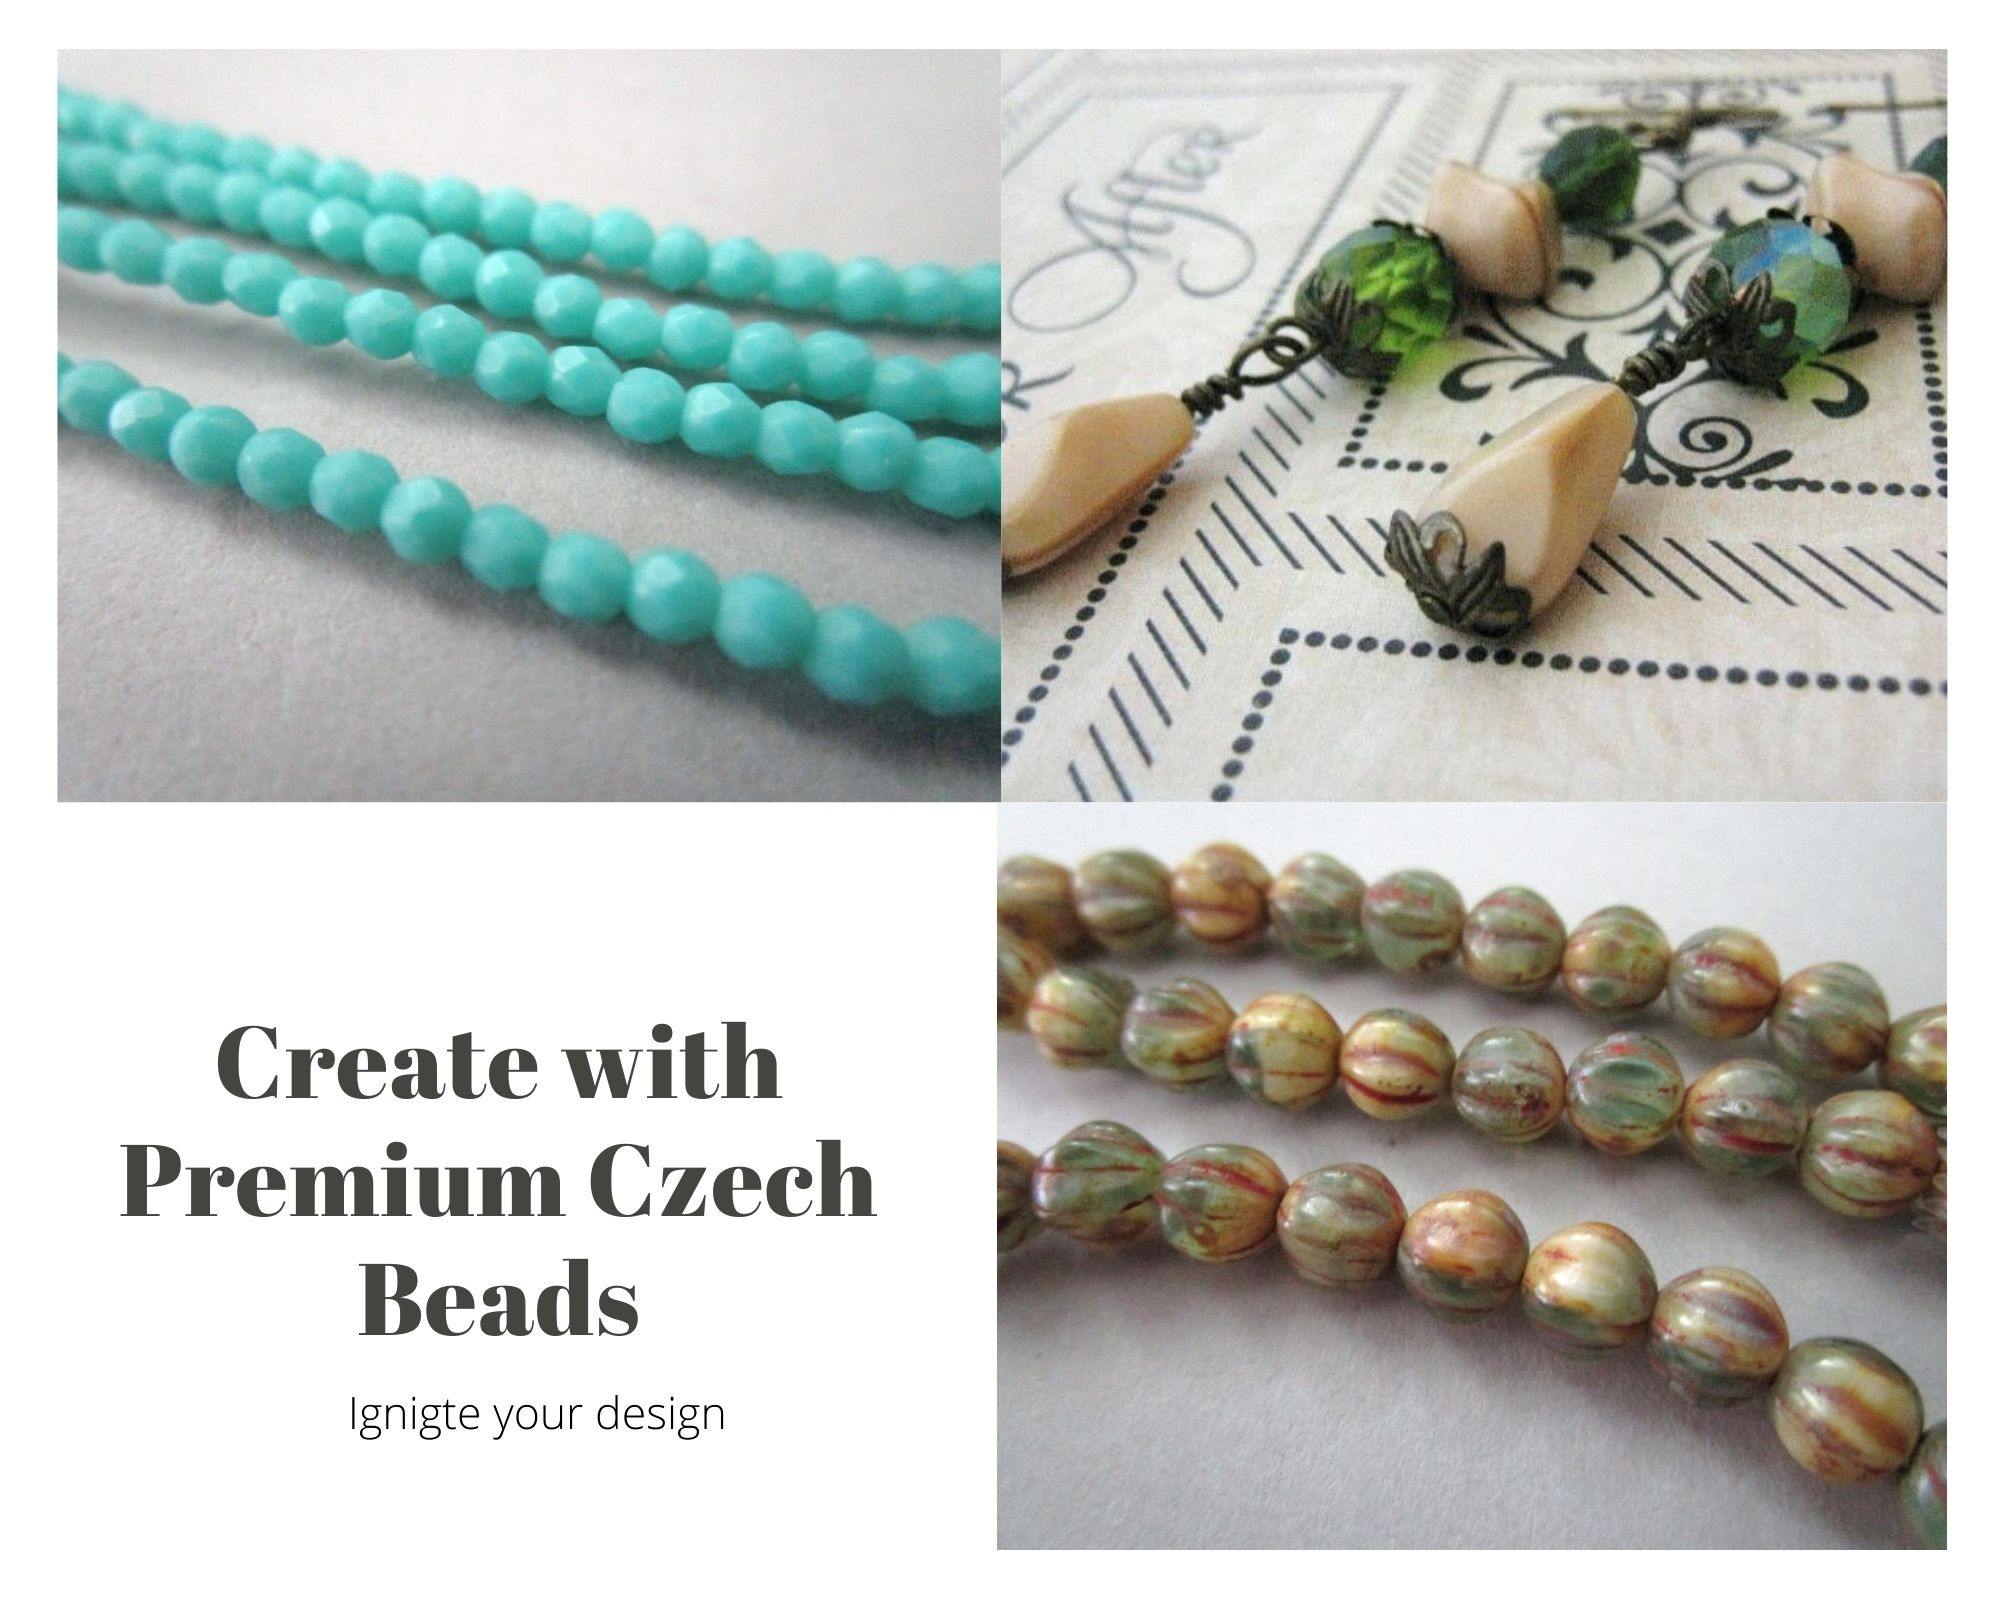 Create with Premium Czech Beads...  Ignite your design